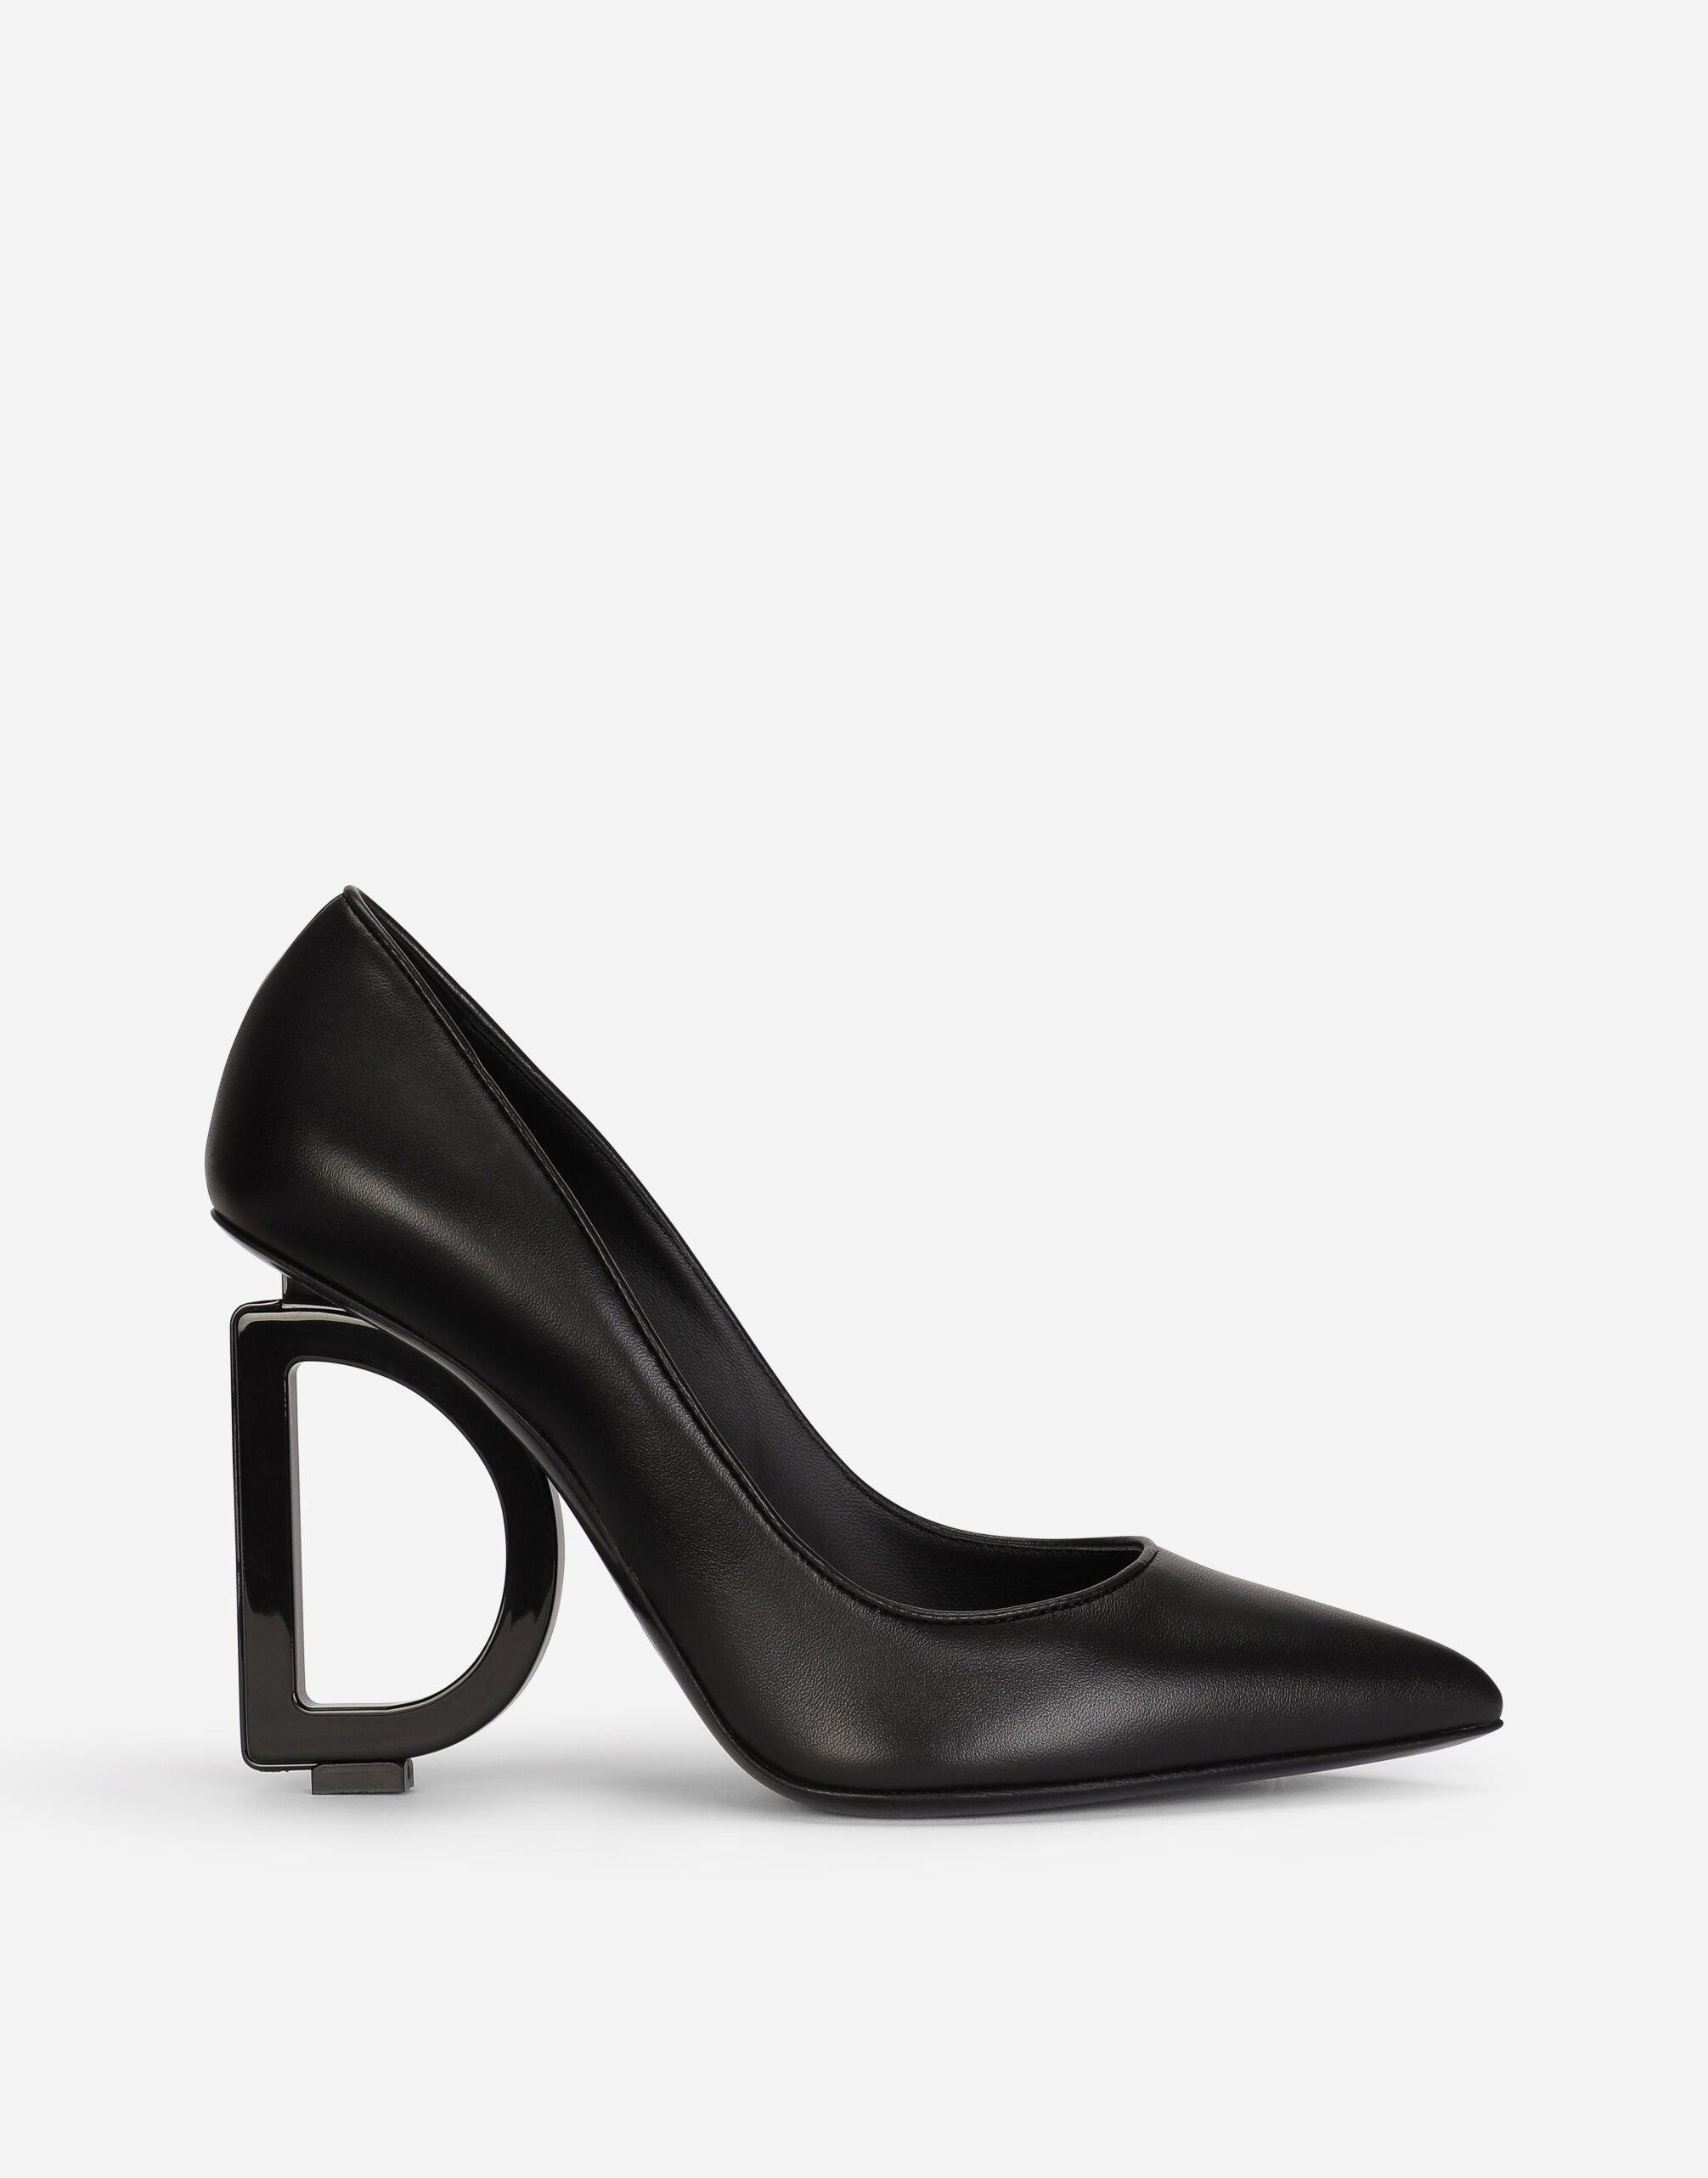 Nappa leather pumps with DG heel